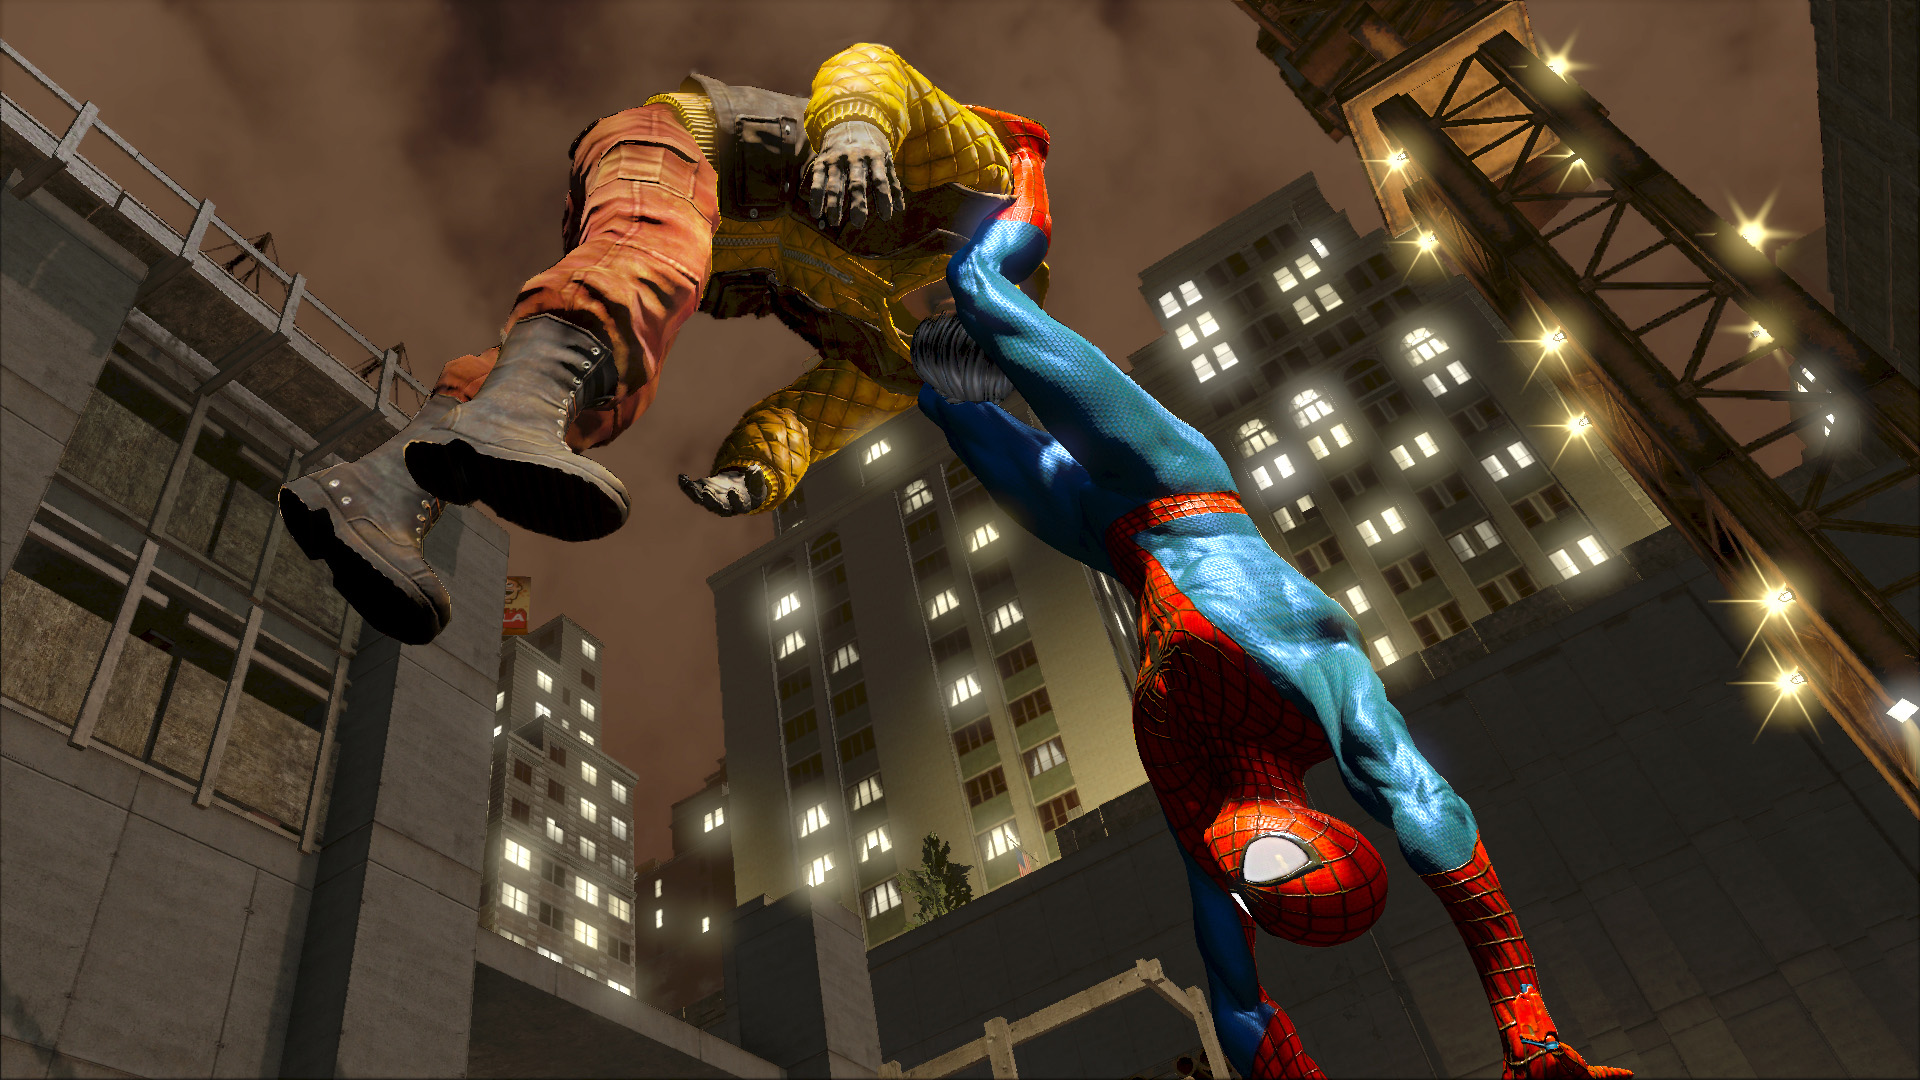 http://cdn1-www.superherohype.com/assets/uploads/gallery/the-amazing-spider-man-2-video-game/original-2.jpg